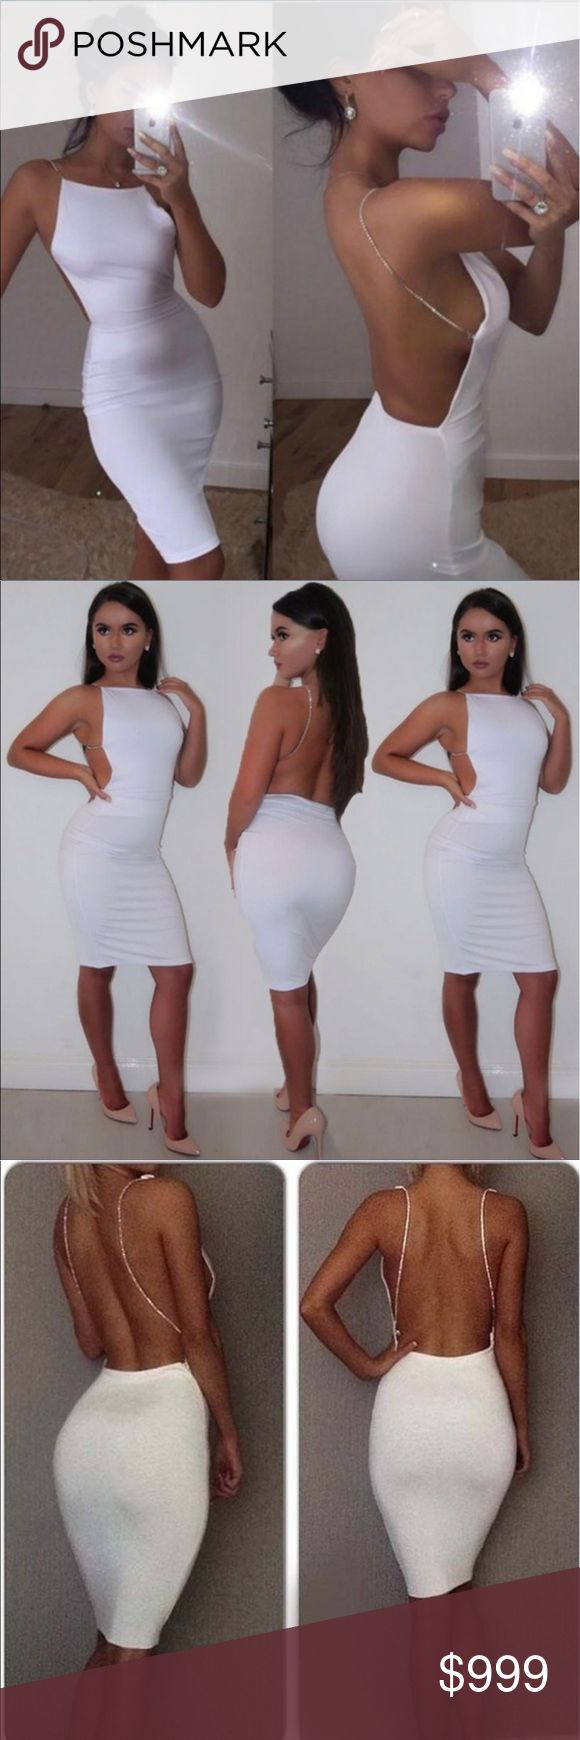 New Arrival Sexy All White Dress  Sexy All White BodyCon Dress Free People Tops